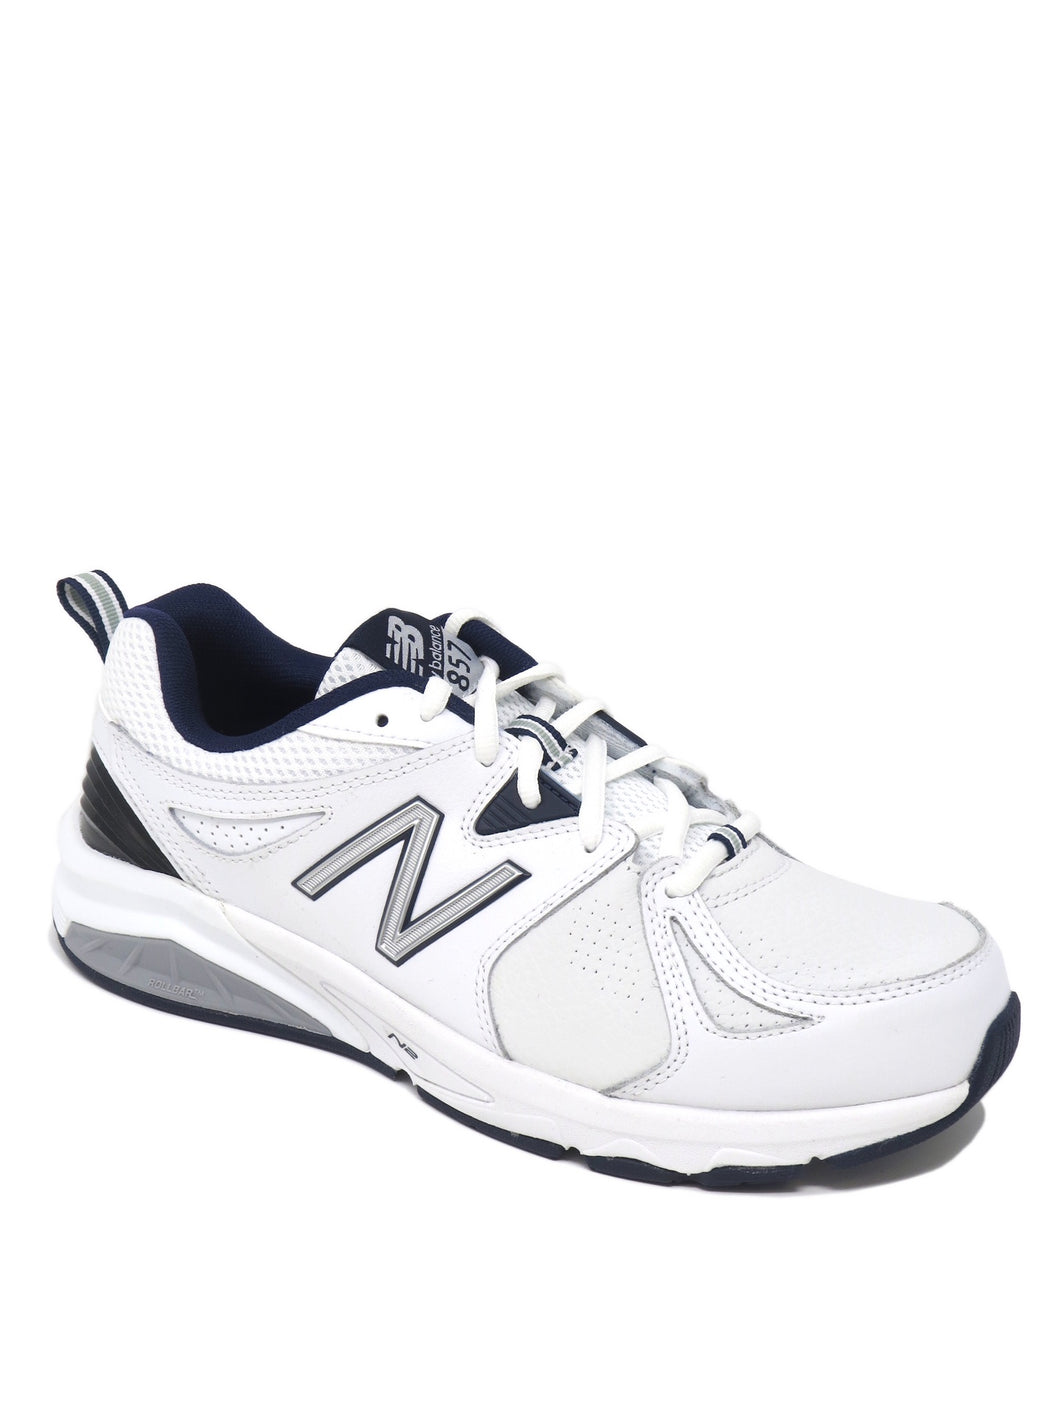 New Balance | MX857WN2 | Training Shoe | White/Navy